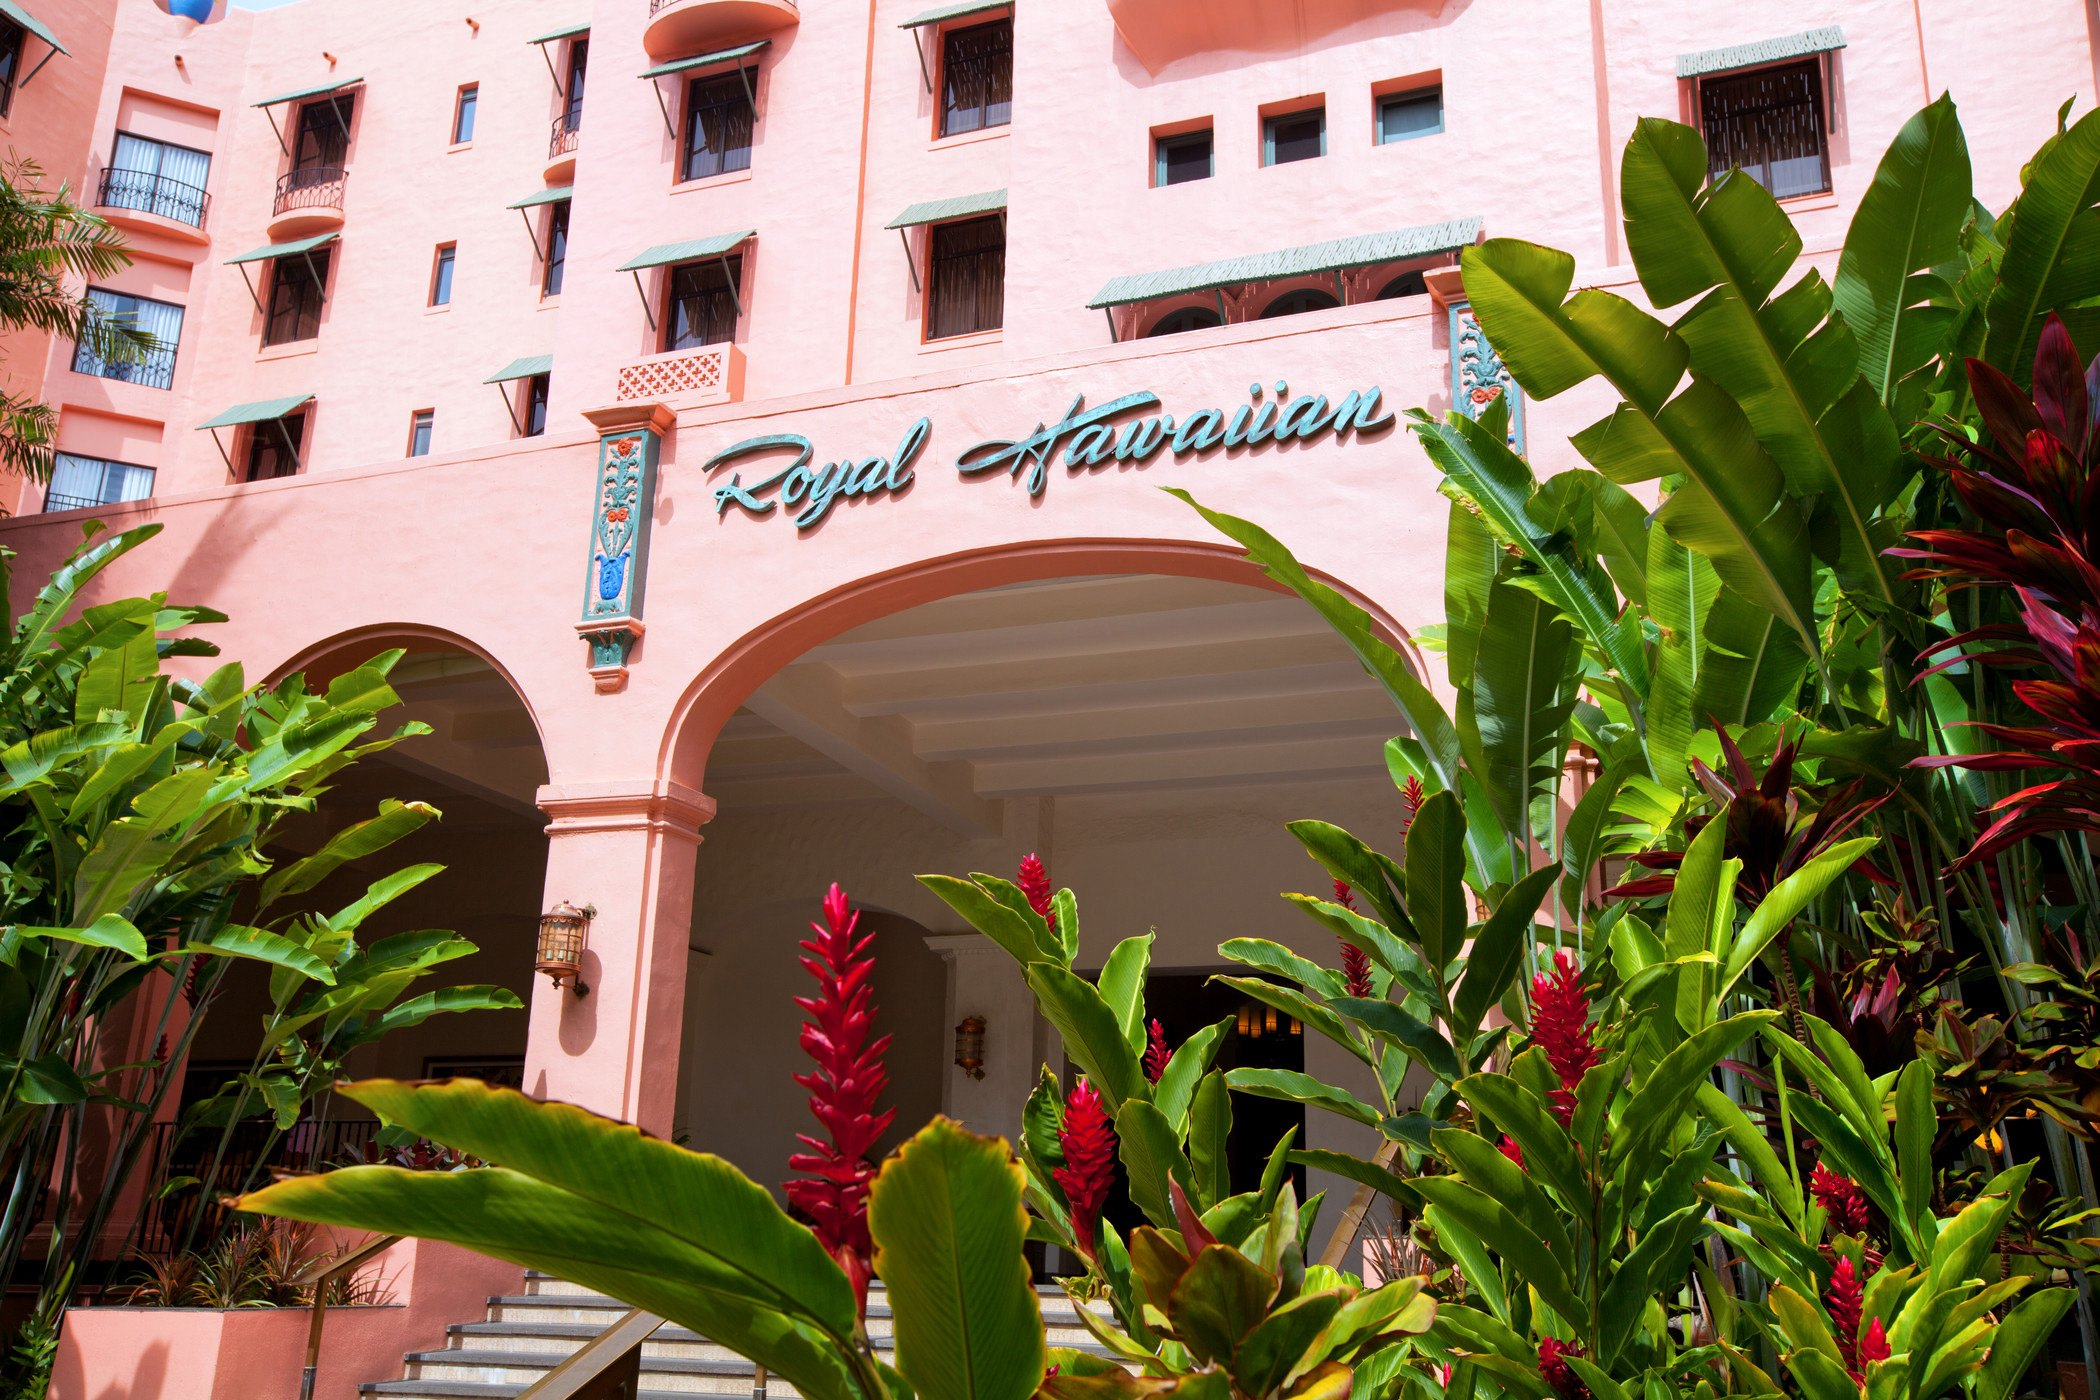 Royal Hawaiian Entrance with Lush Plants